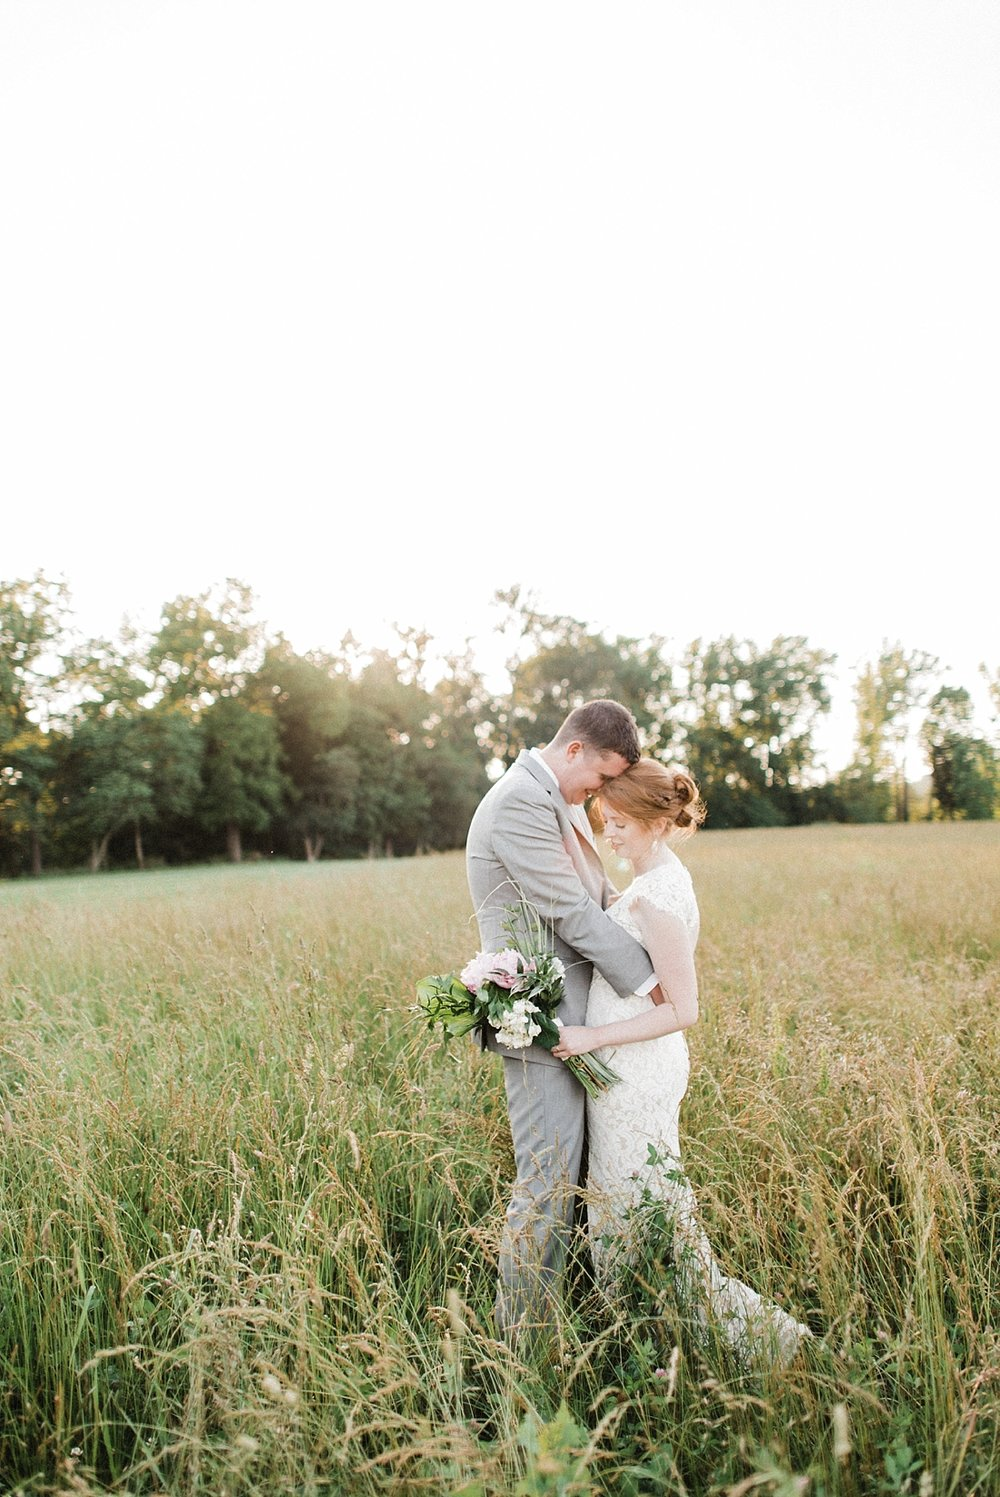 Marryland Weddings Blush and Green Romantic Summer Wedding Jubilee Farms Meghan Elizabeth Photography_0971.jpg